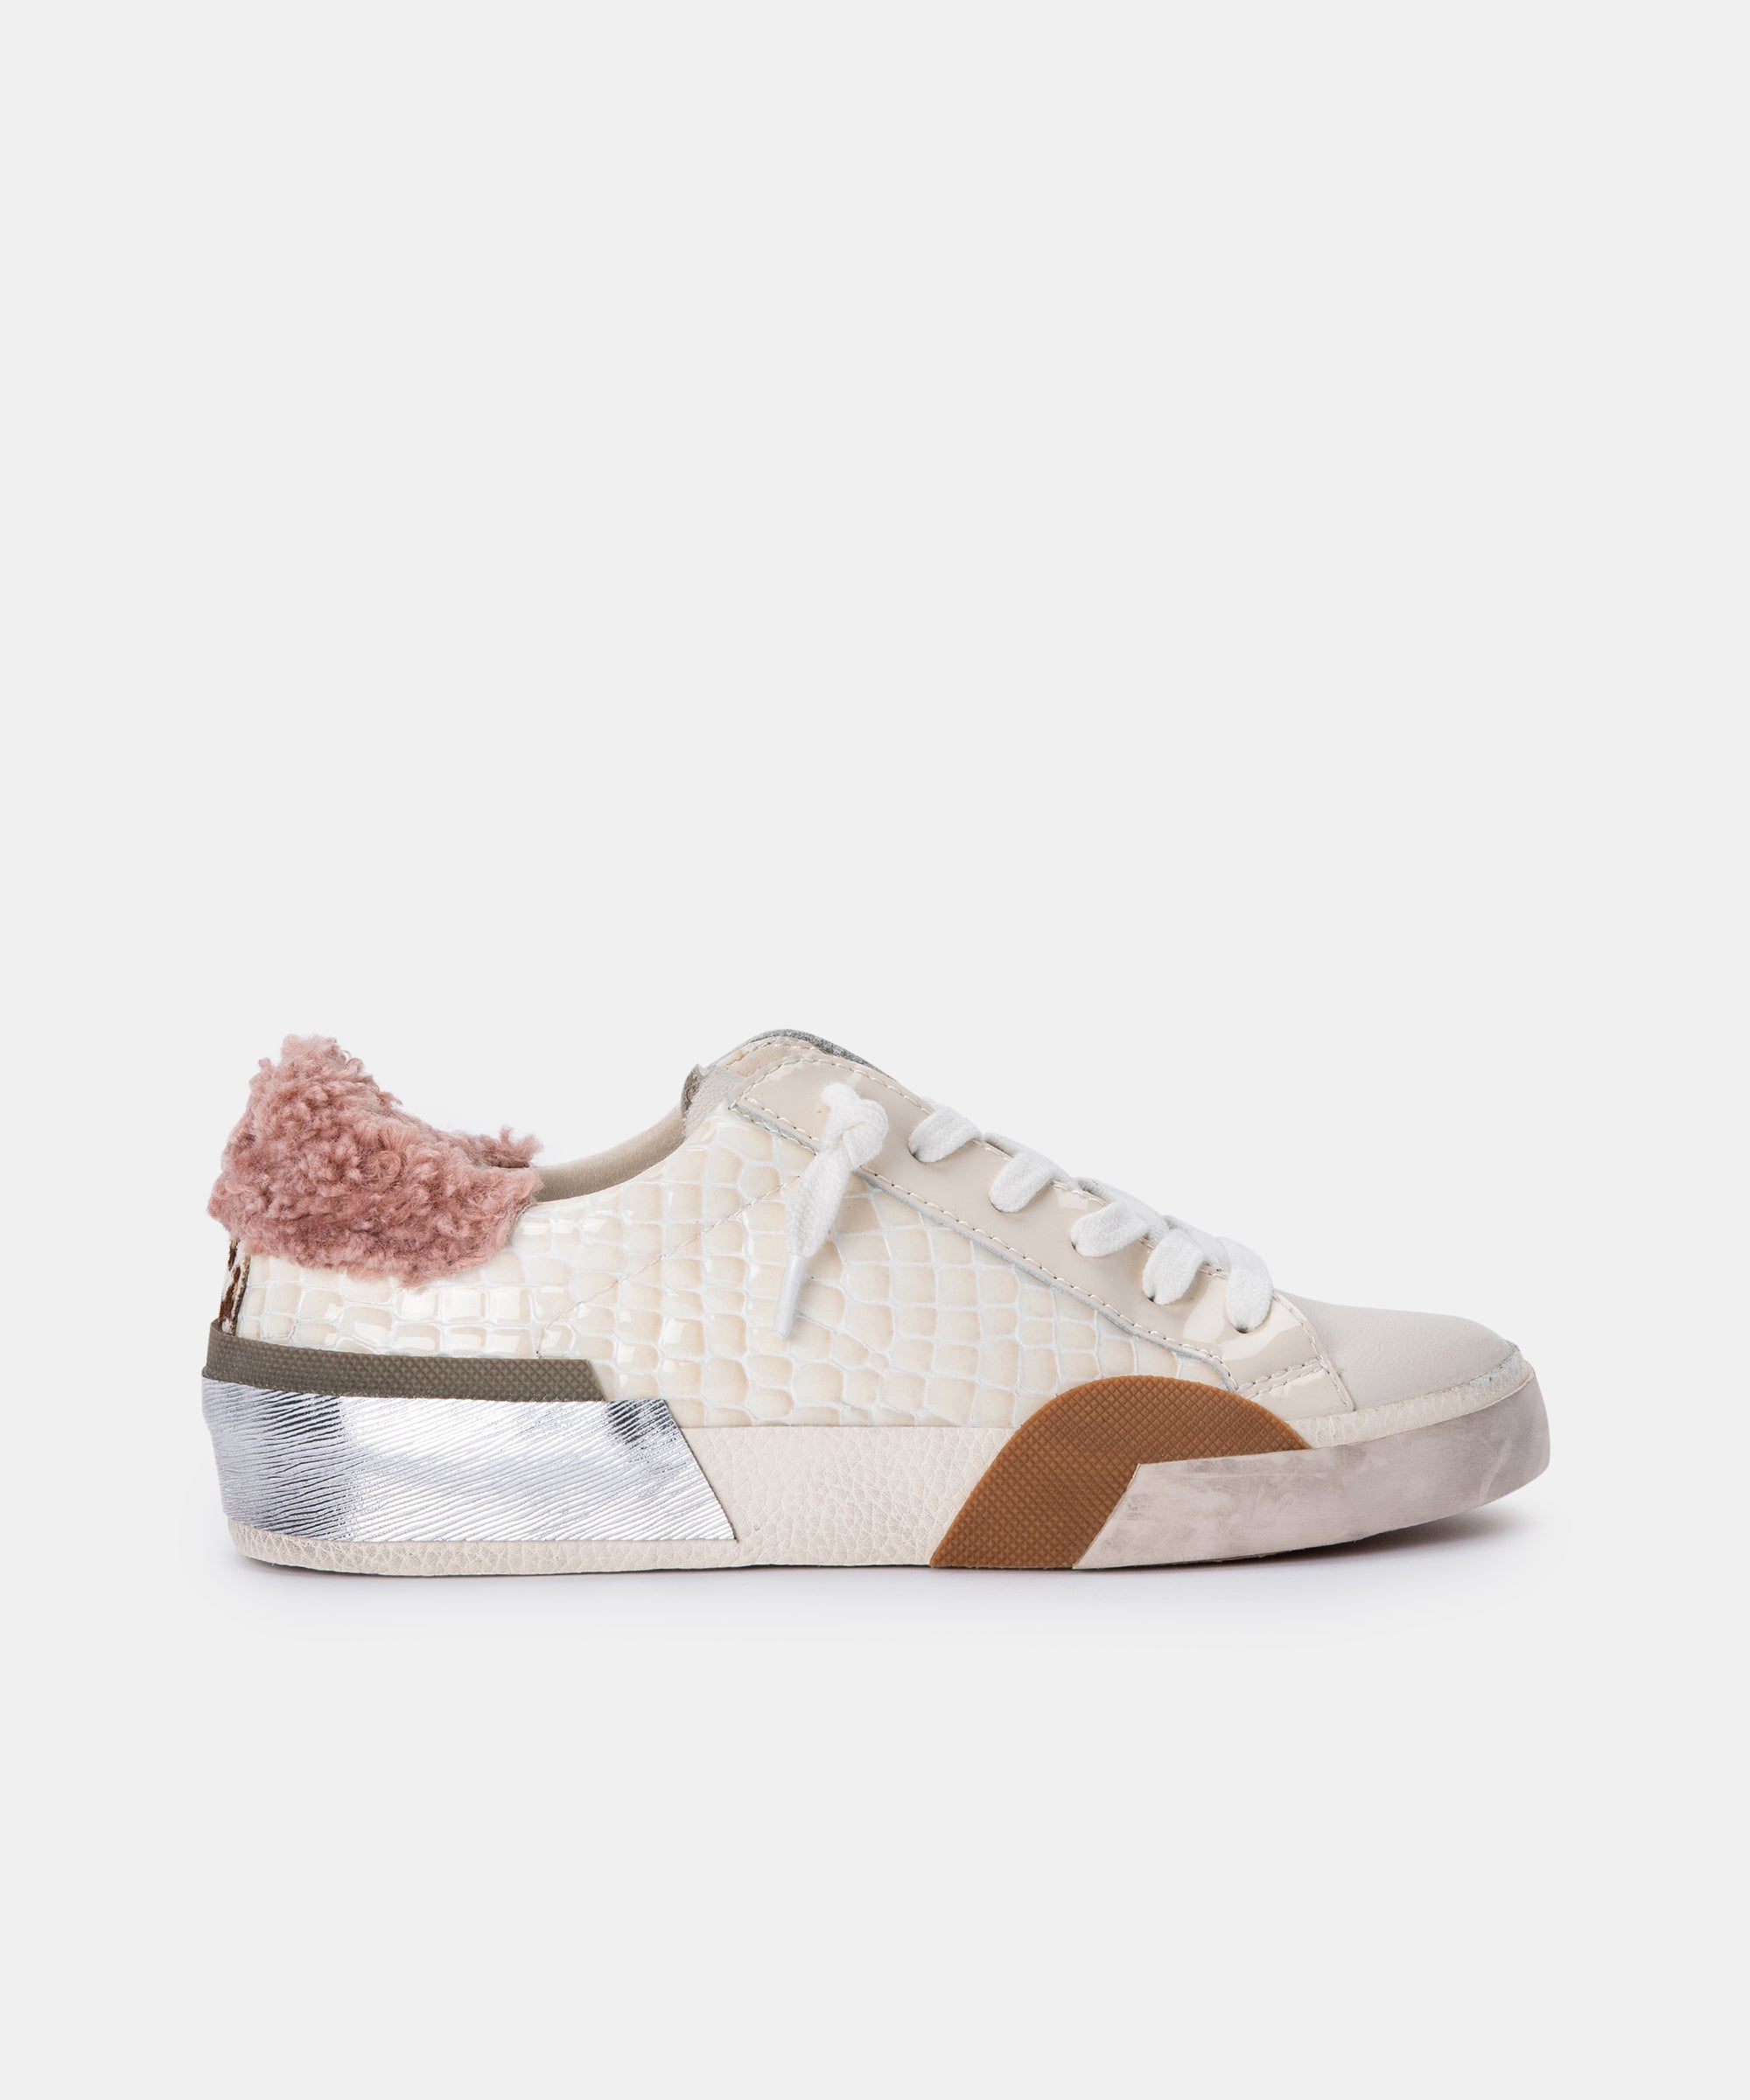 ZINA PLUSH SNEAKERS IN EGGSHELL PATENT CROCO LEATHER